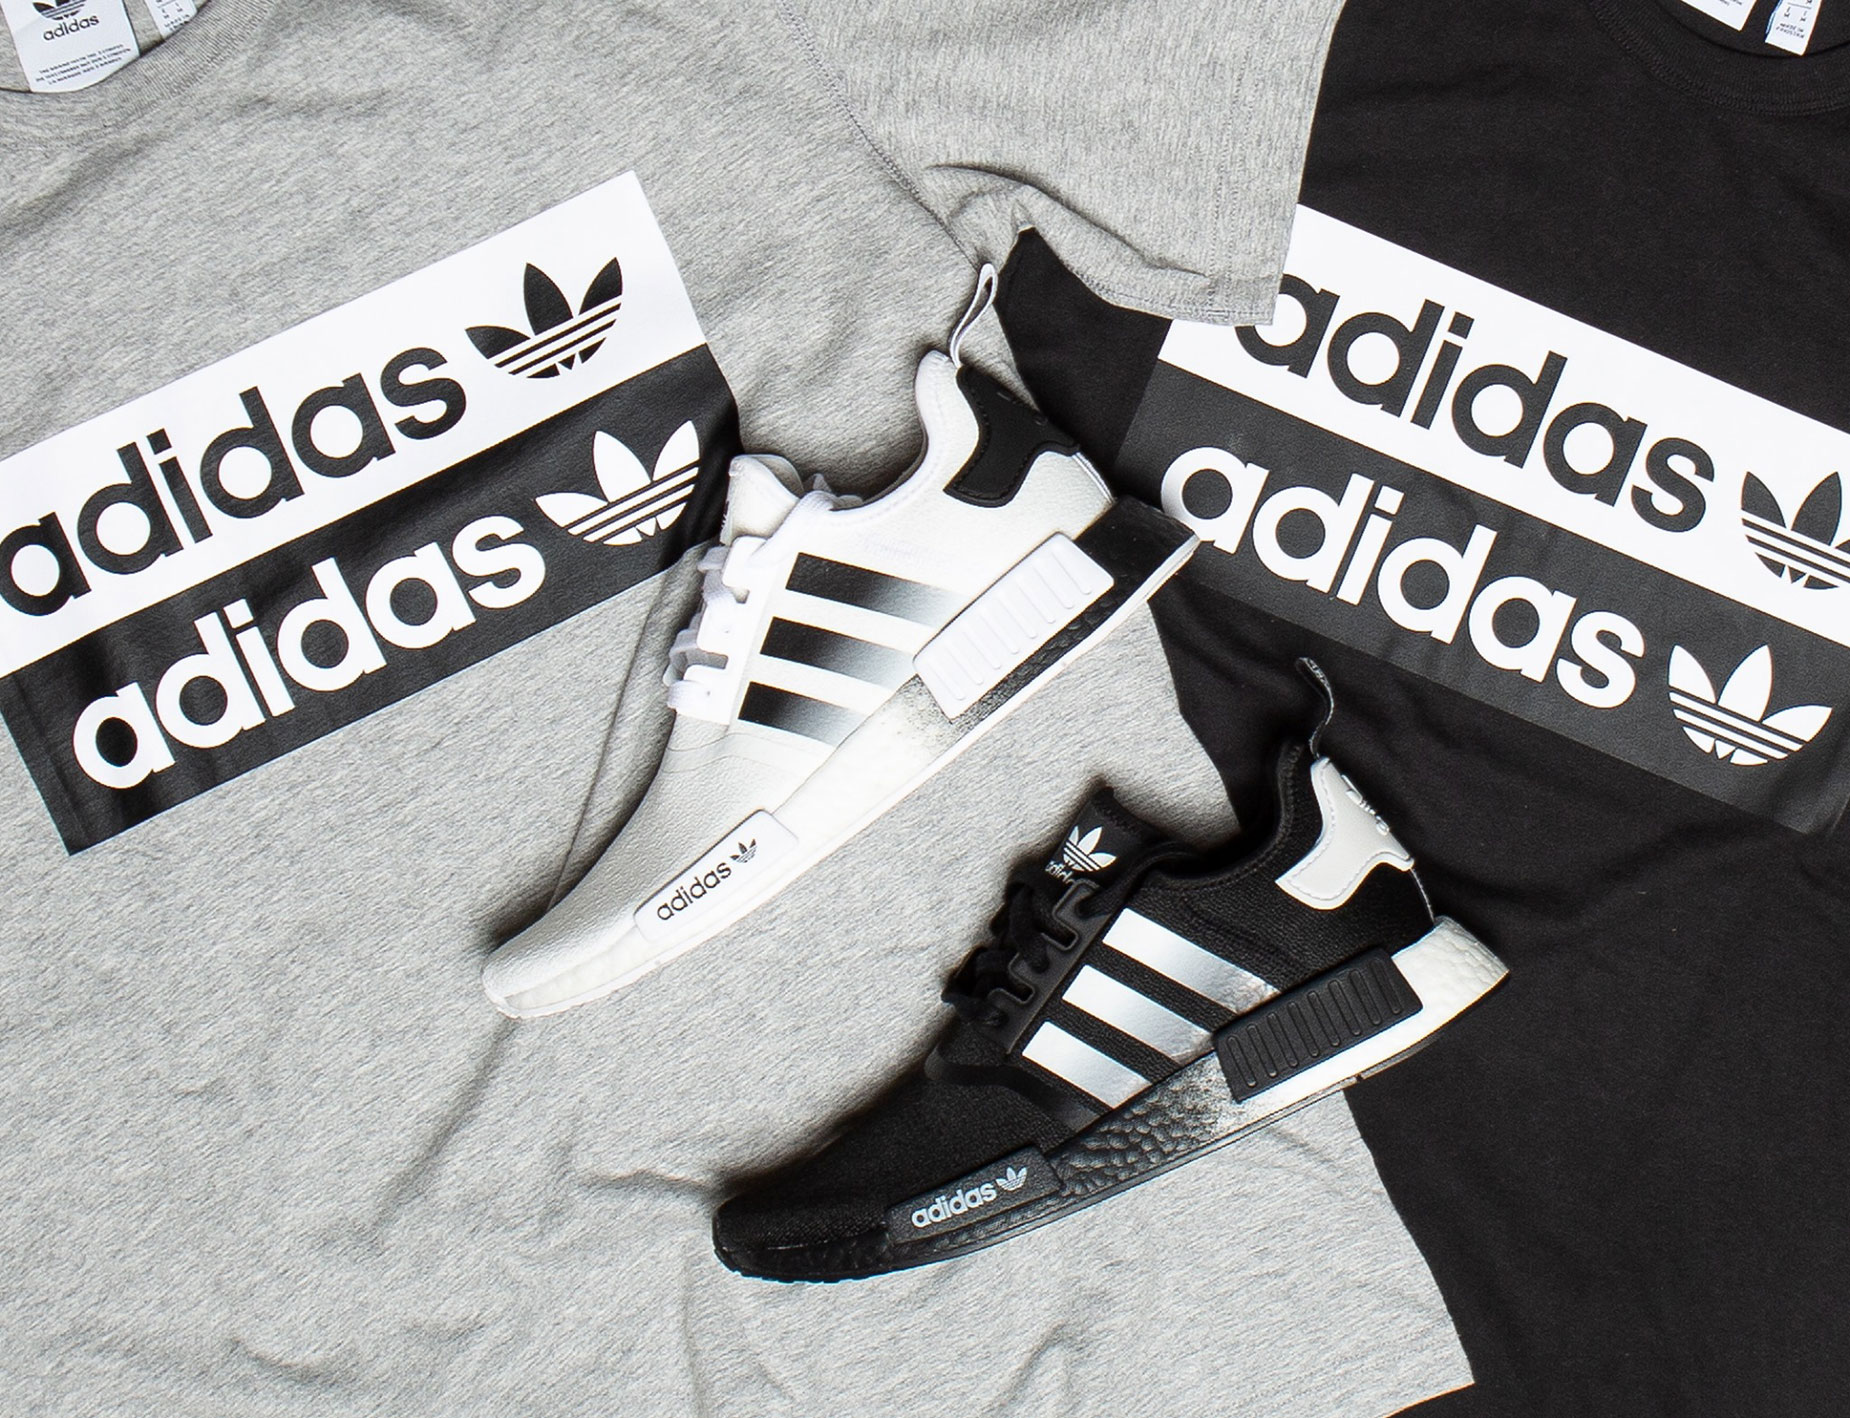 adidas-nmd-r1-eclipse-sneaker-shirt-match